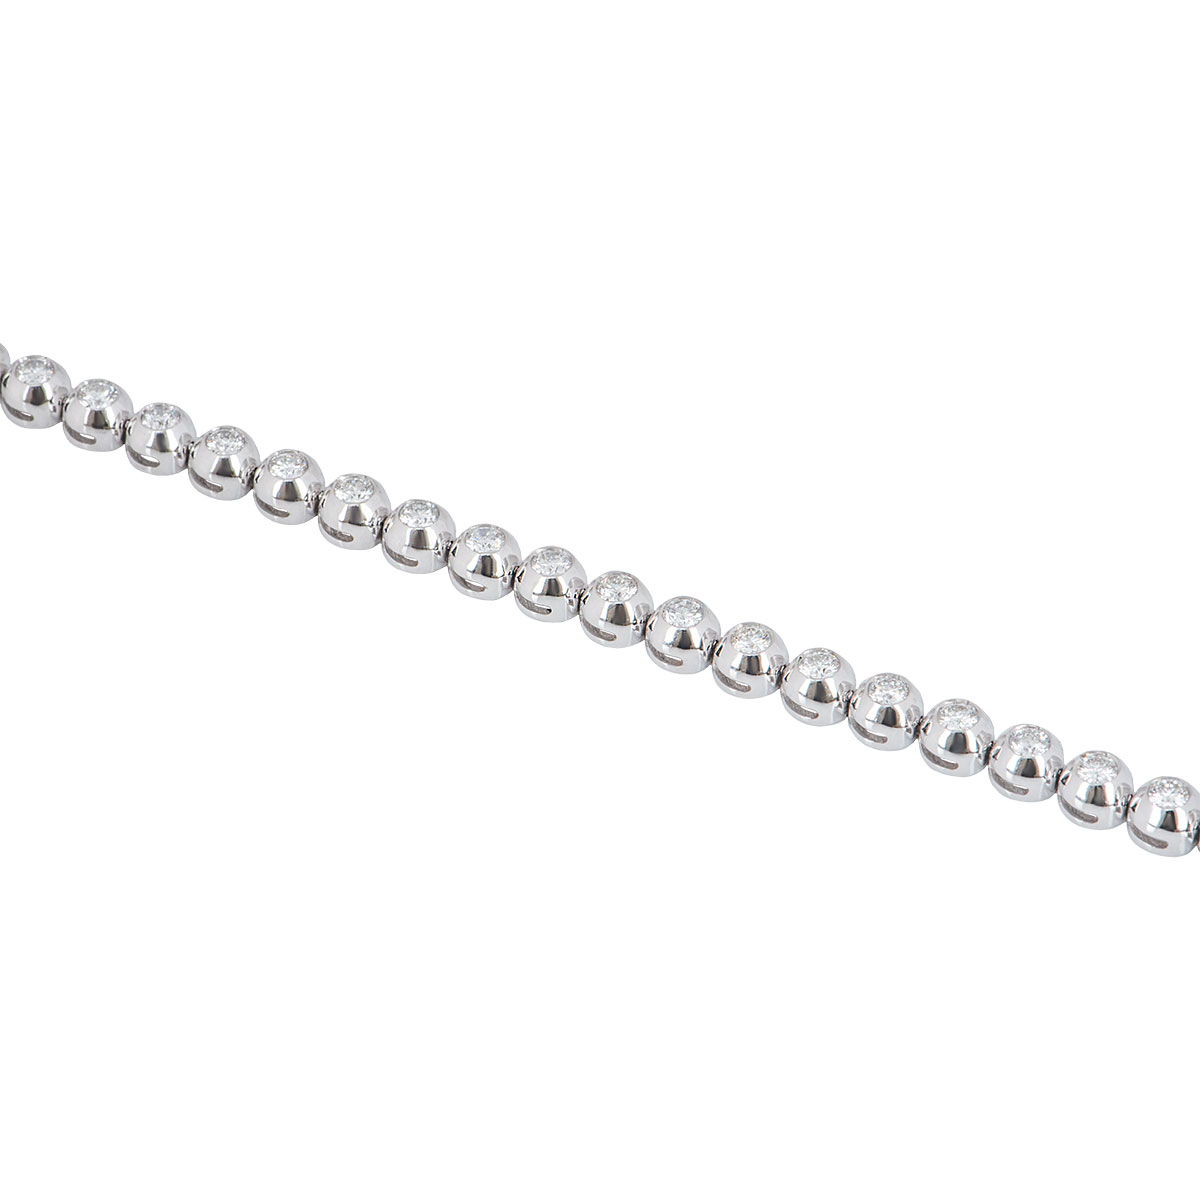 White Gold Diamond Line Bracelet 2.74ct G-H/VS+